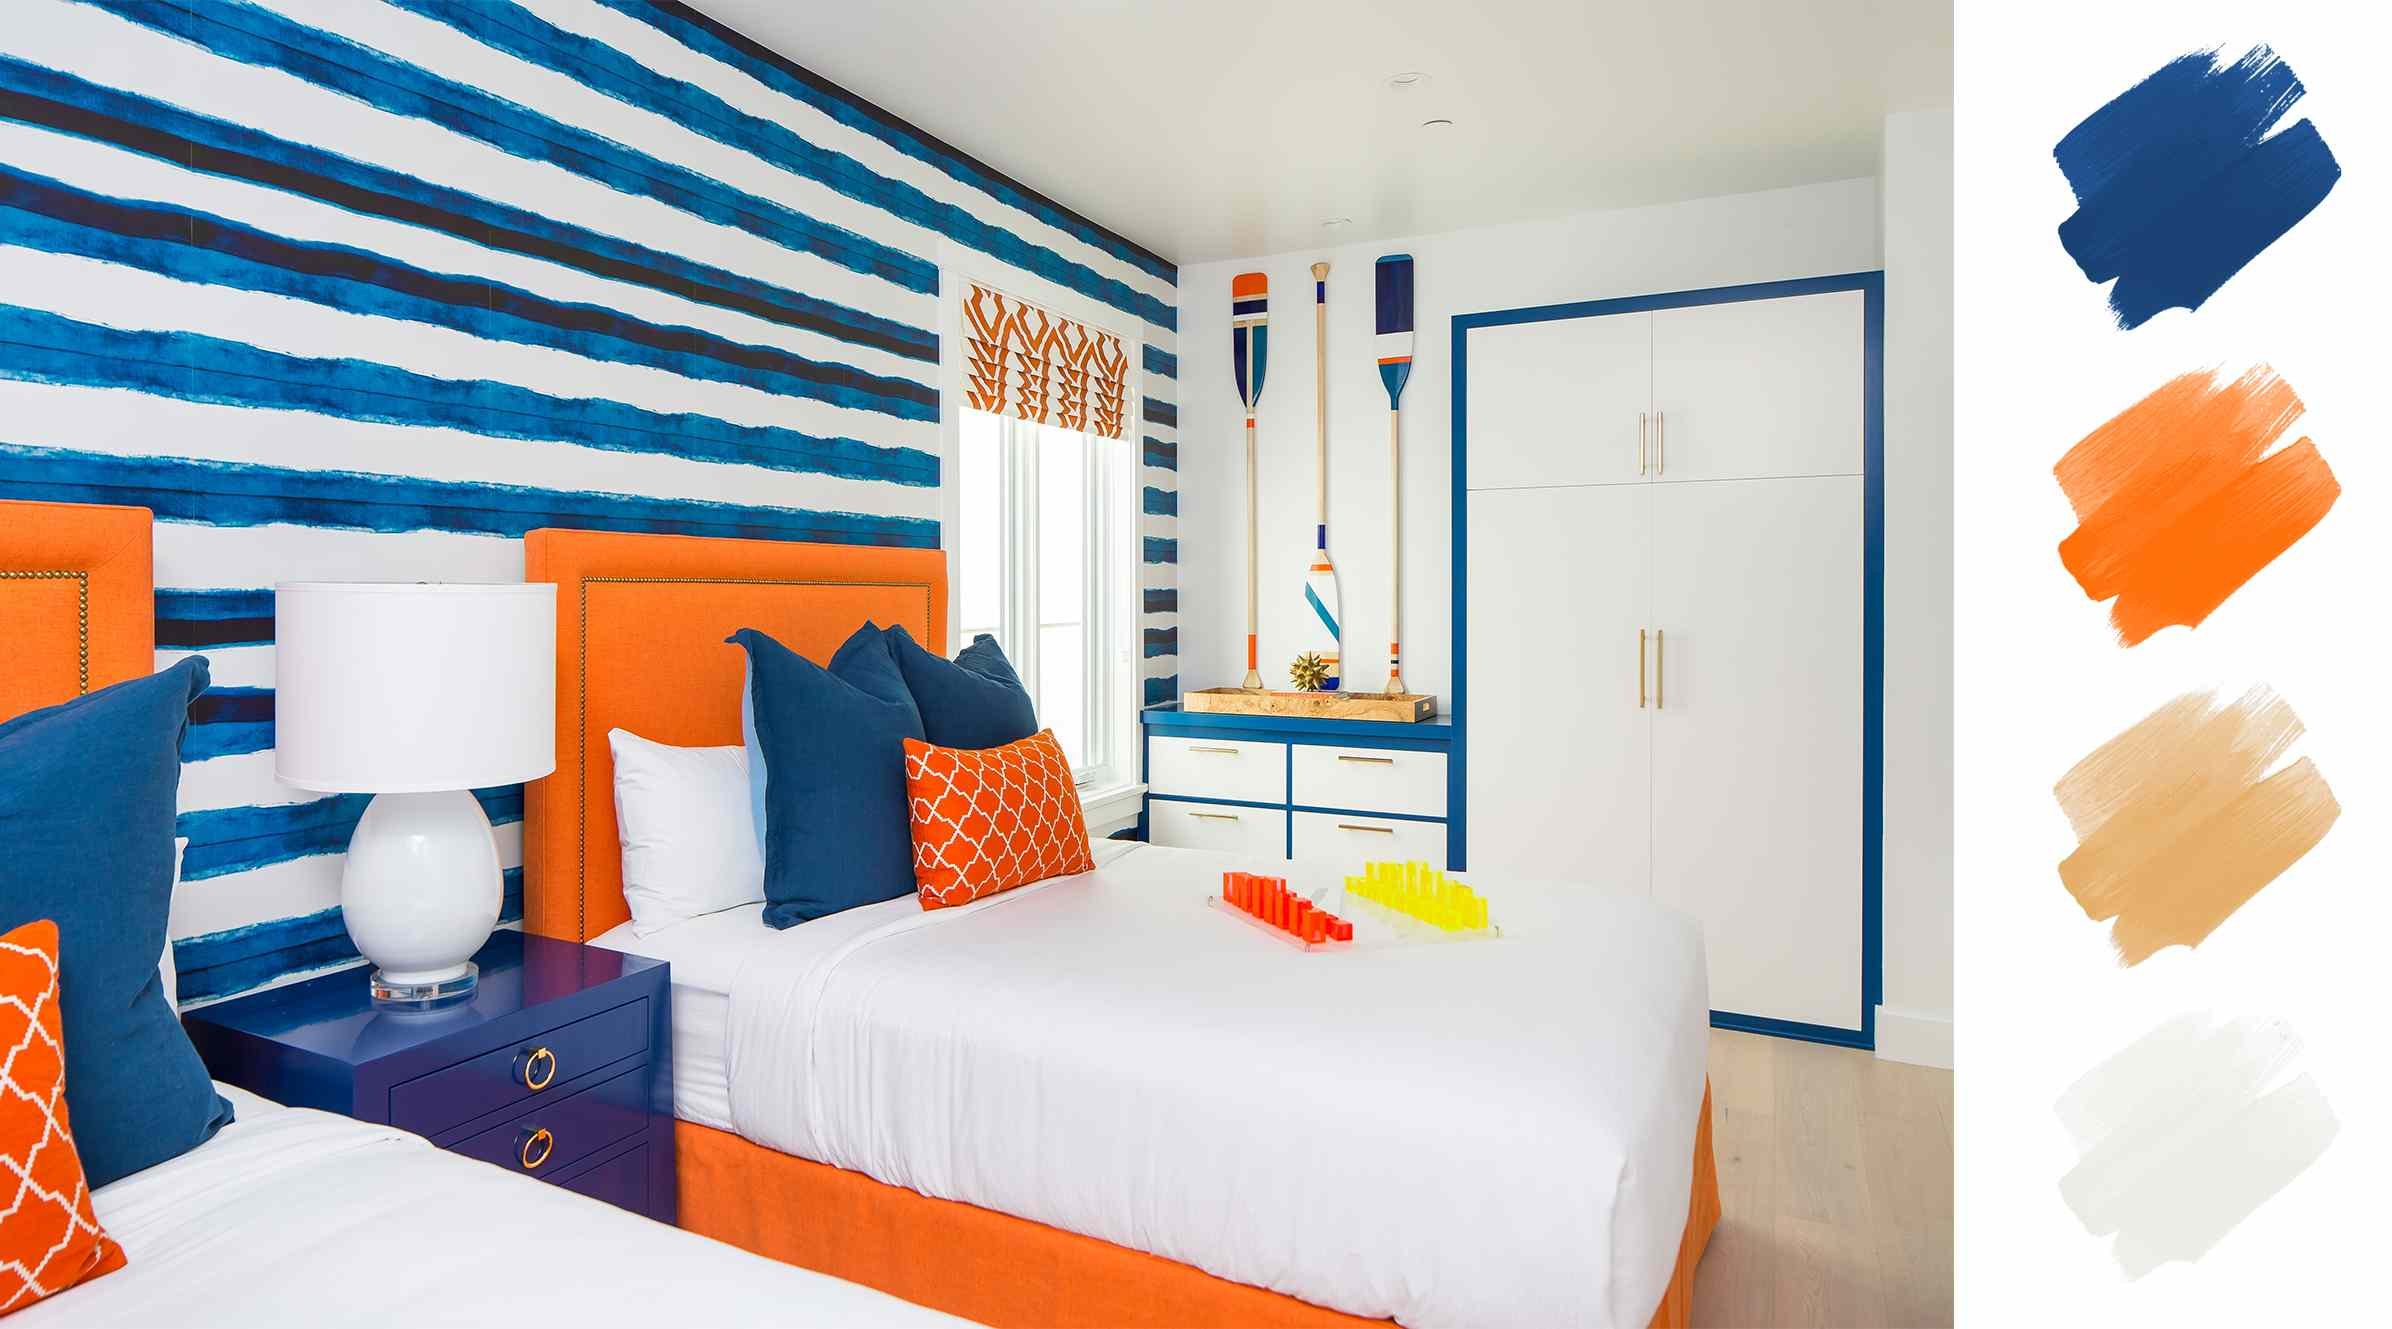 complementary color scheme - orange and blue hotel room